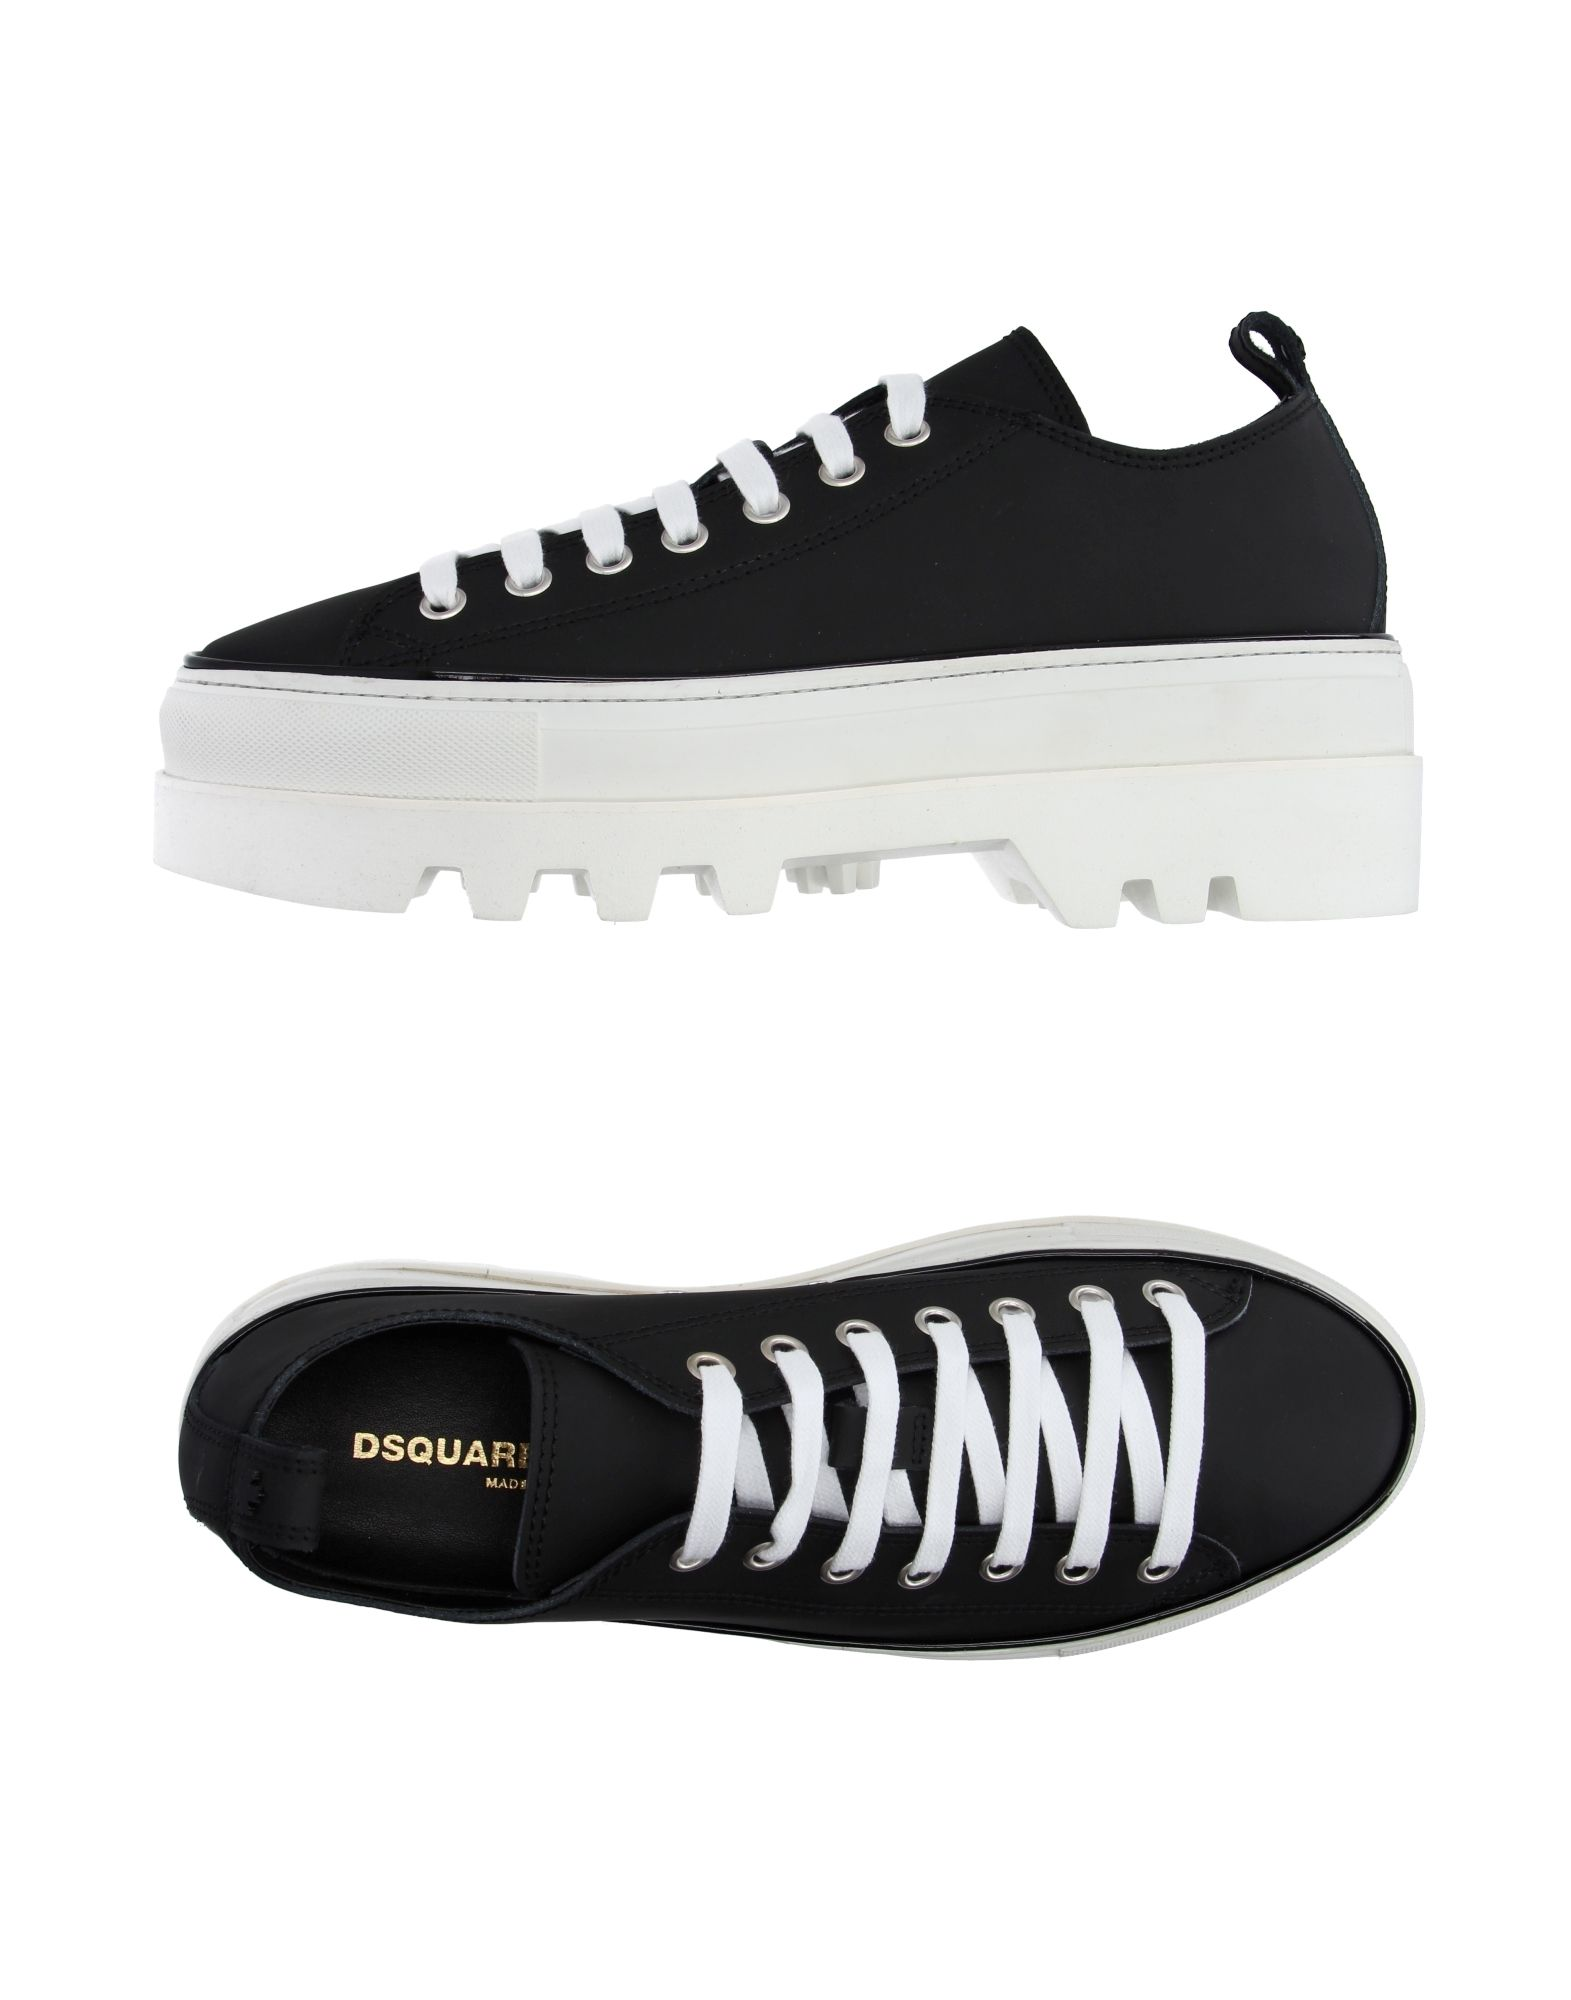 Sneakers Dsquared2 Uomo - Acquista online su